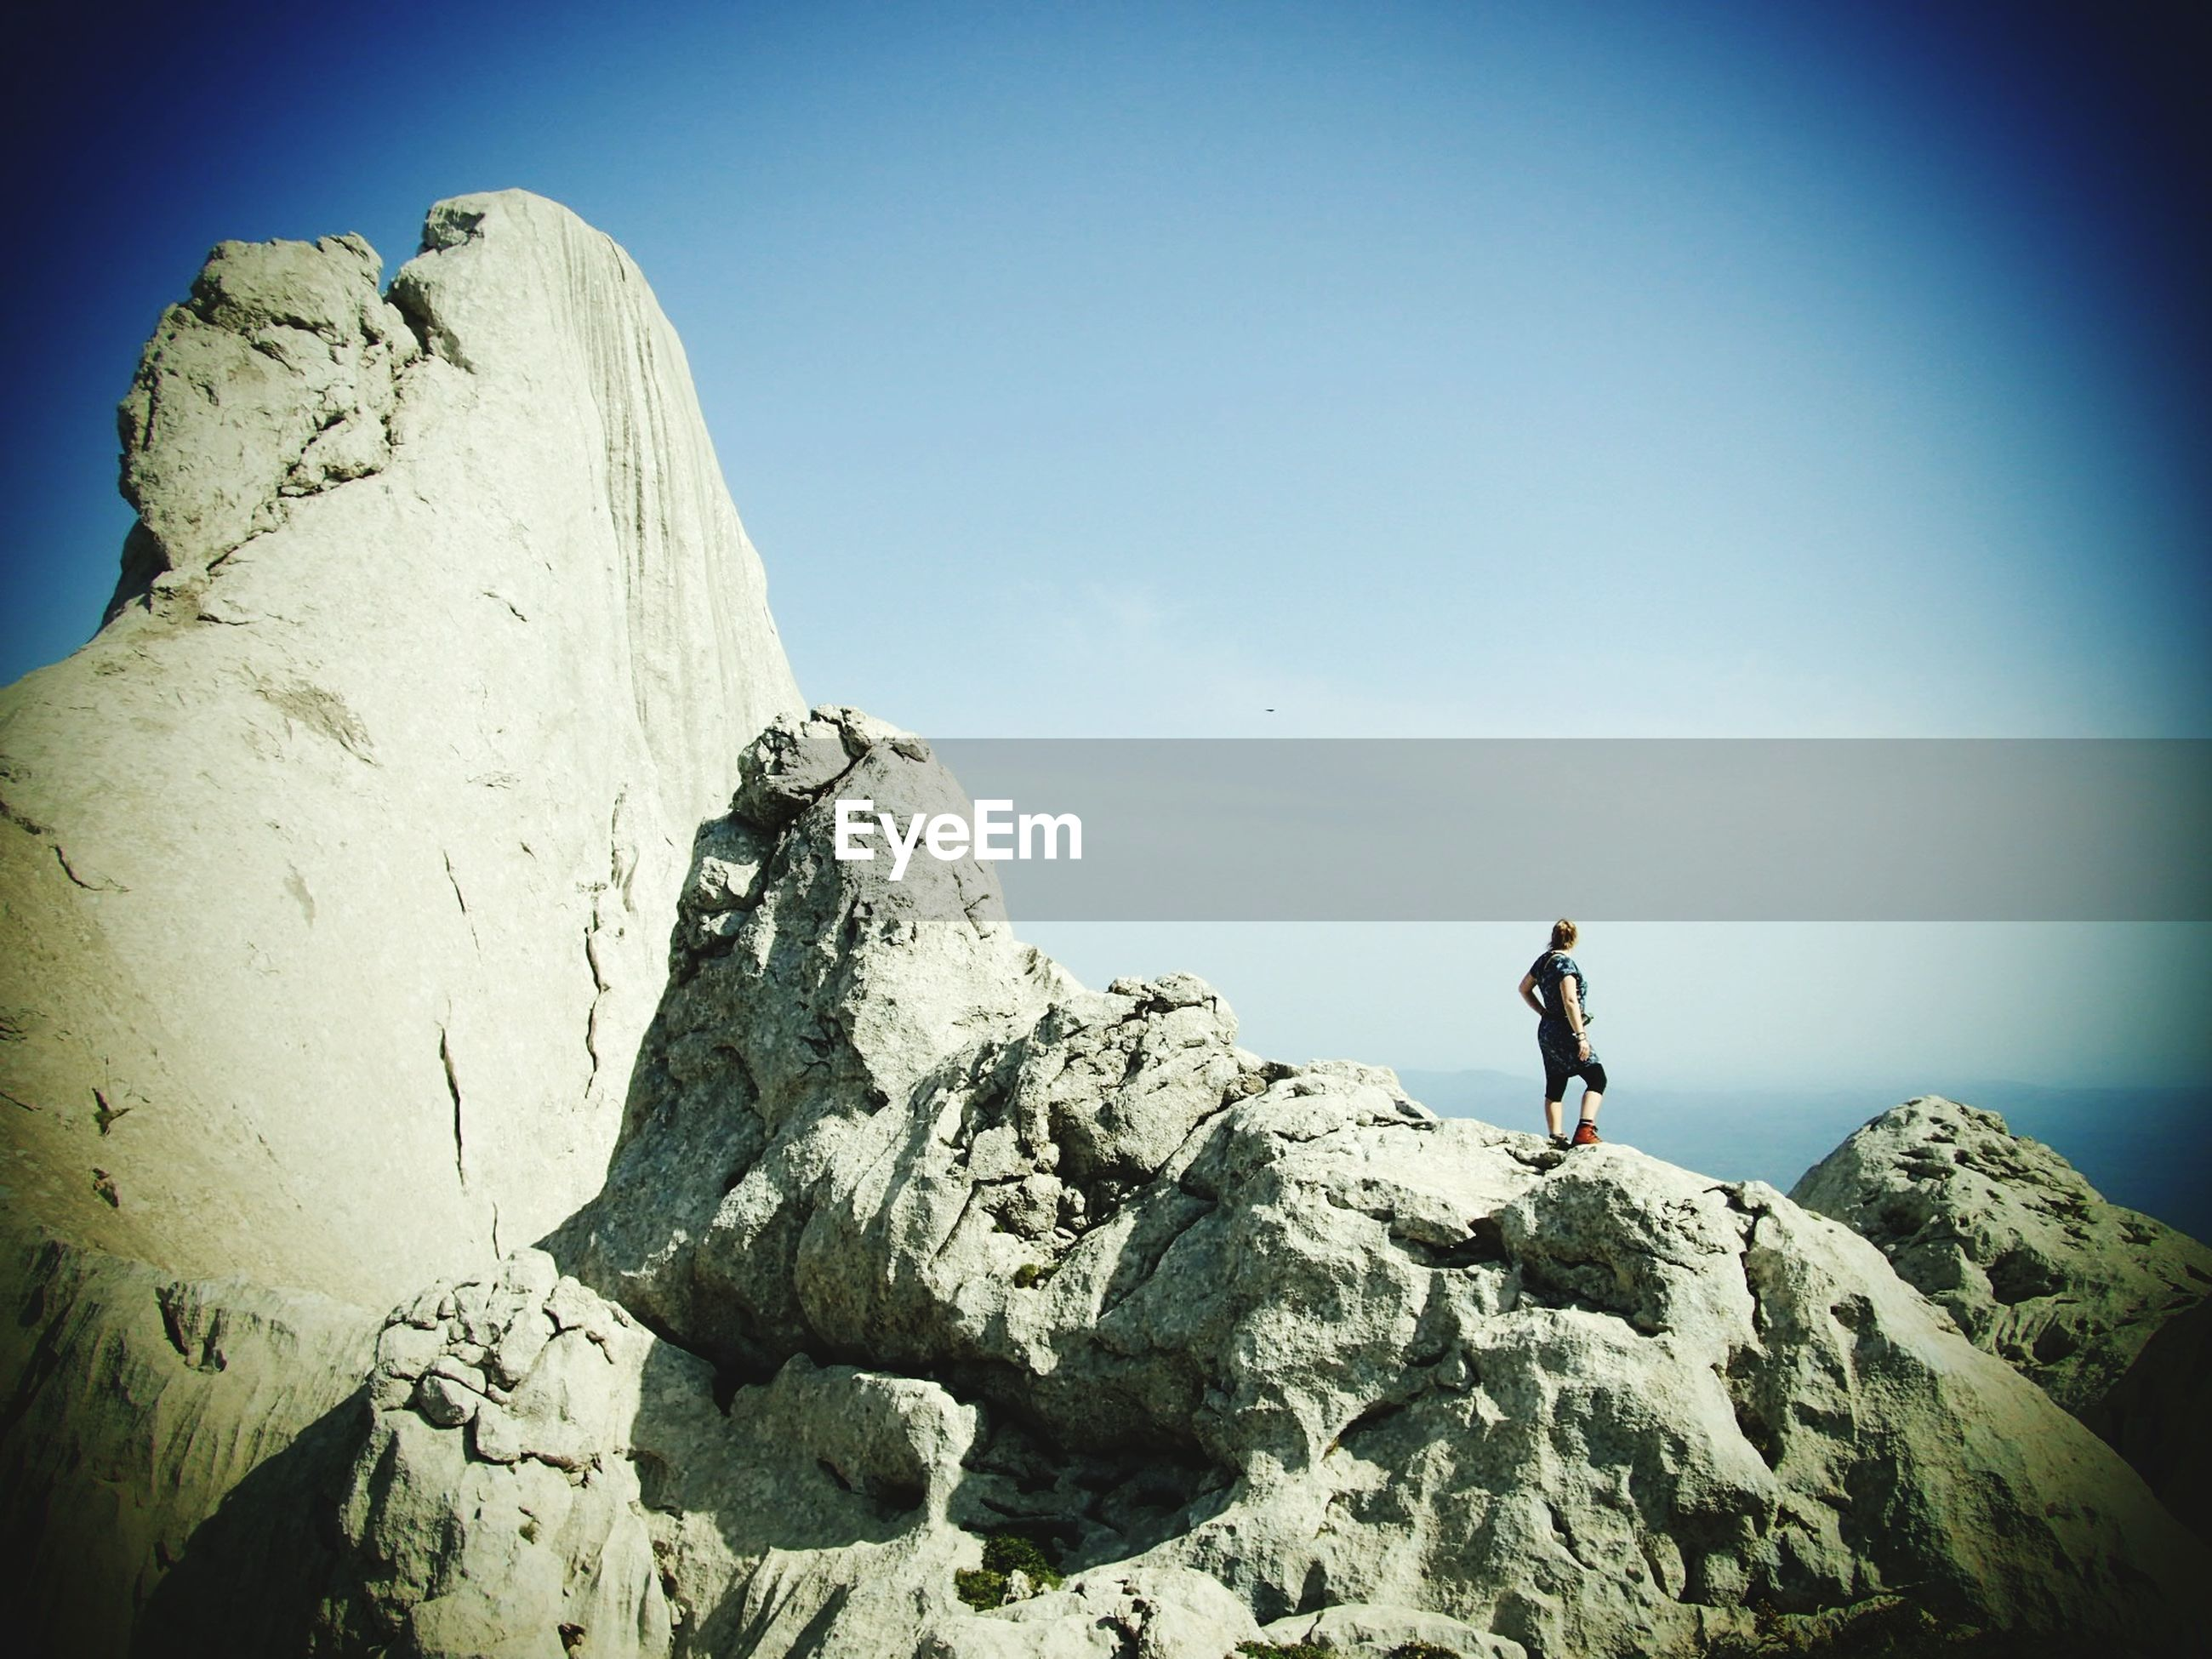 Rear view of woman standing on rock formation against sky